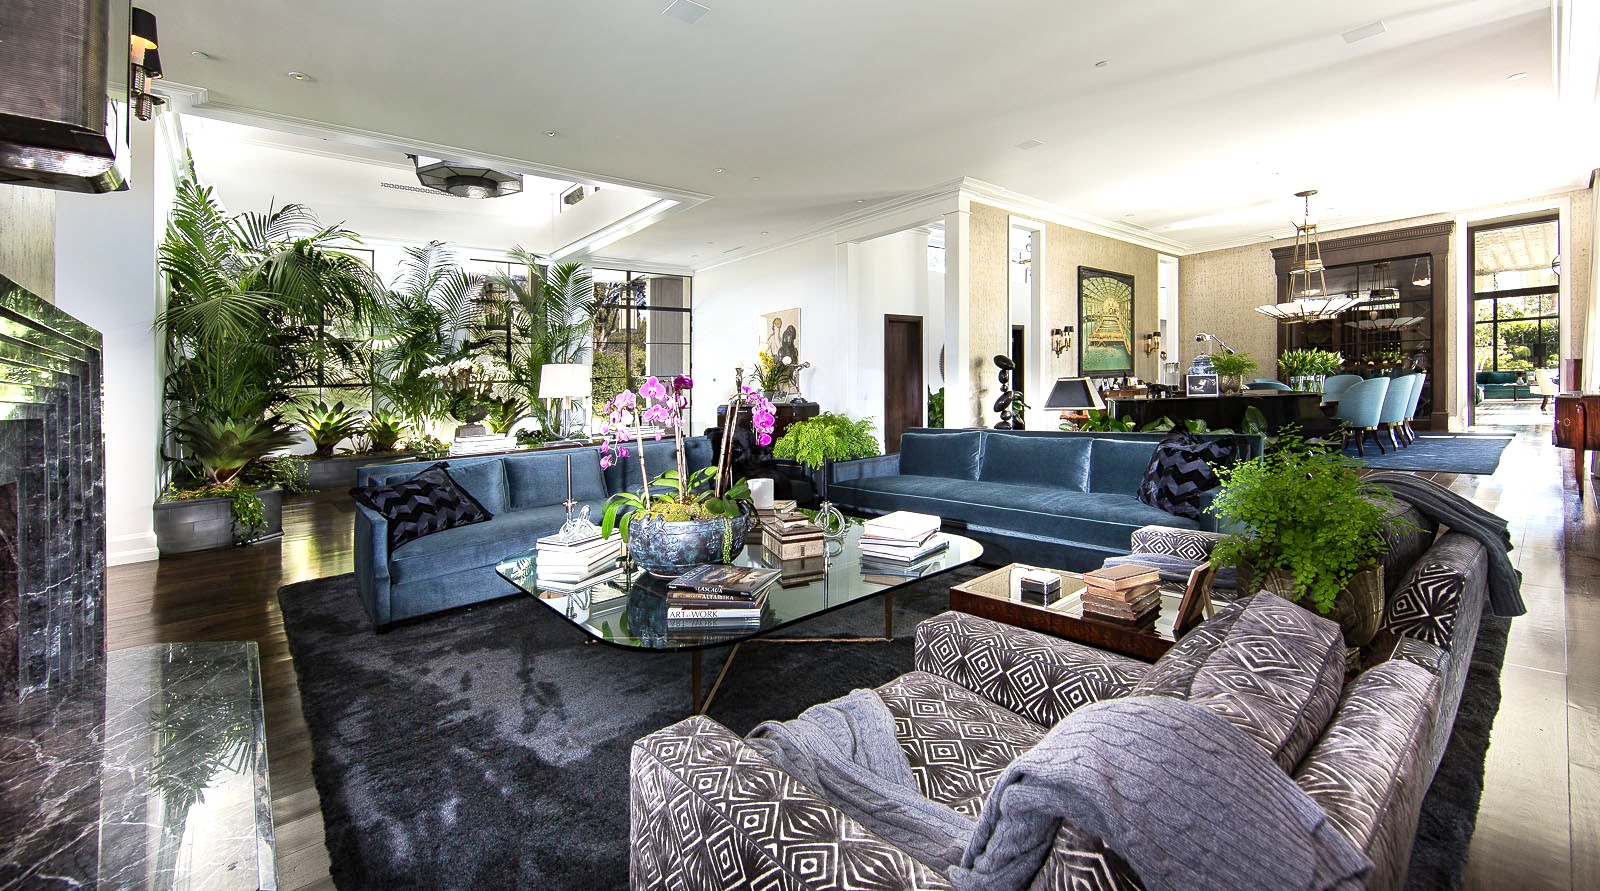 $25 MILLION DOLLAR ART DECO STYLE ESTATE - SEE THIS HOUSE | COCOCOZY